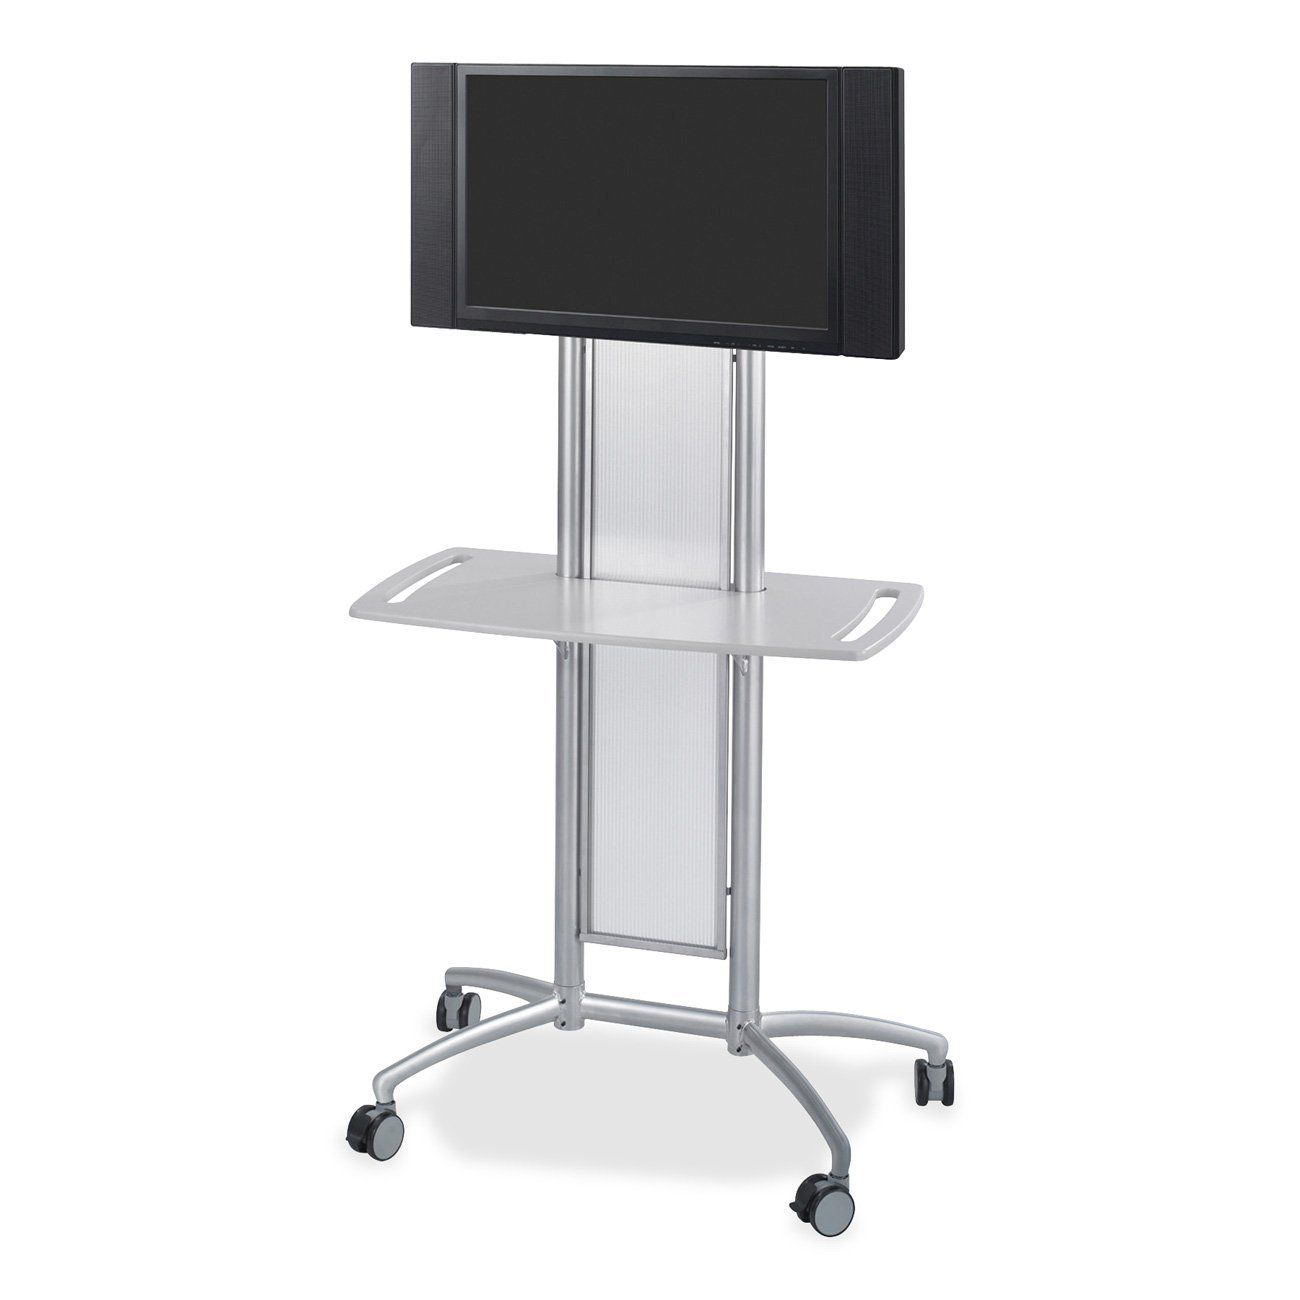 Amazon.com: Safco Products 8926GR Impromptu Flat Panel TV Cart, Metallic Gray: Office Products